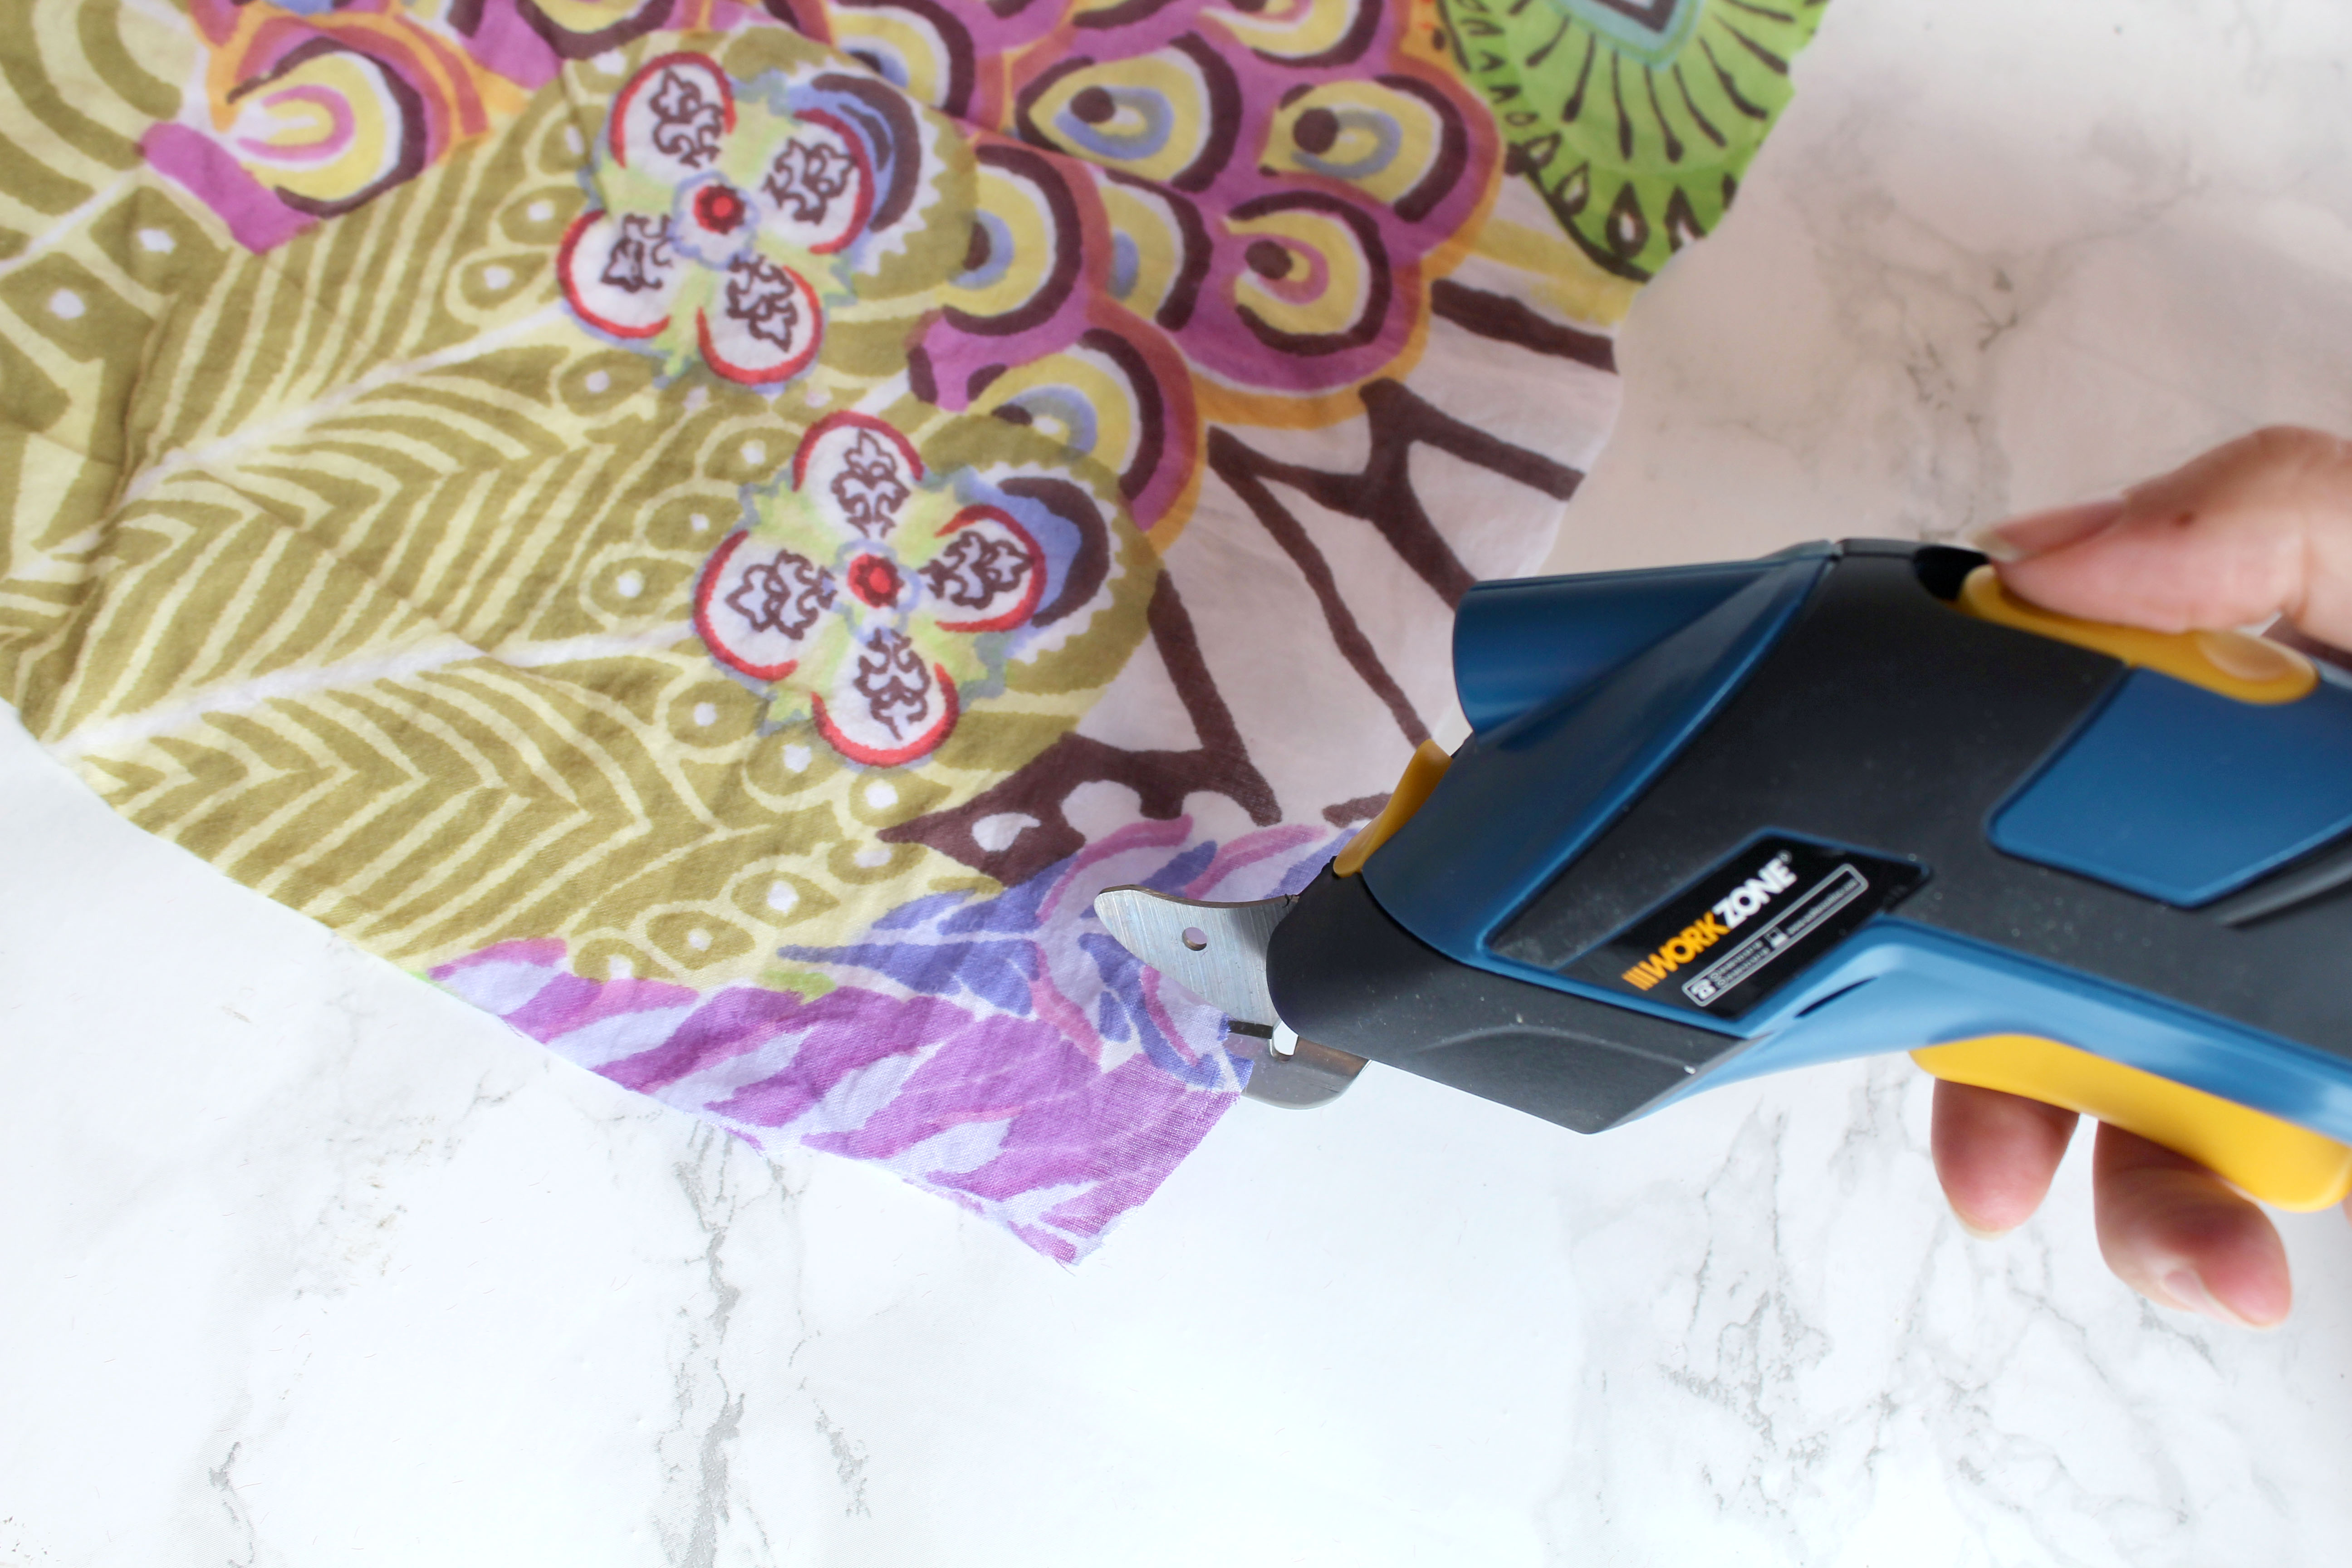 Cutting fabric with the workzone cordless cutter tool for rag rugging